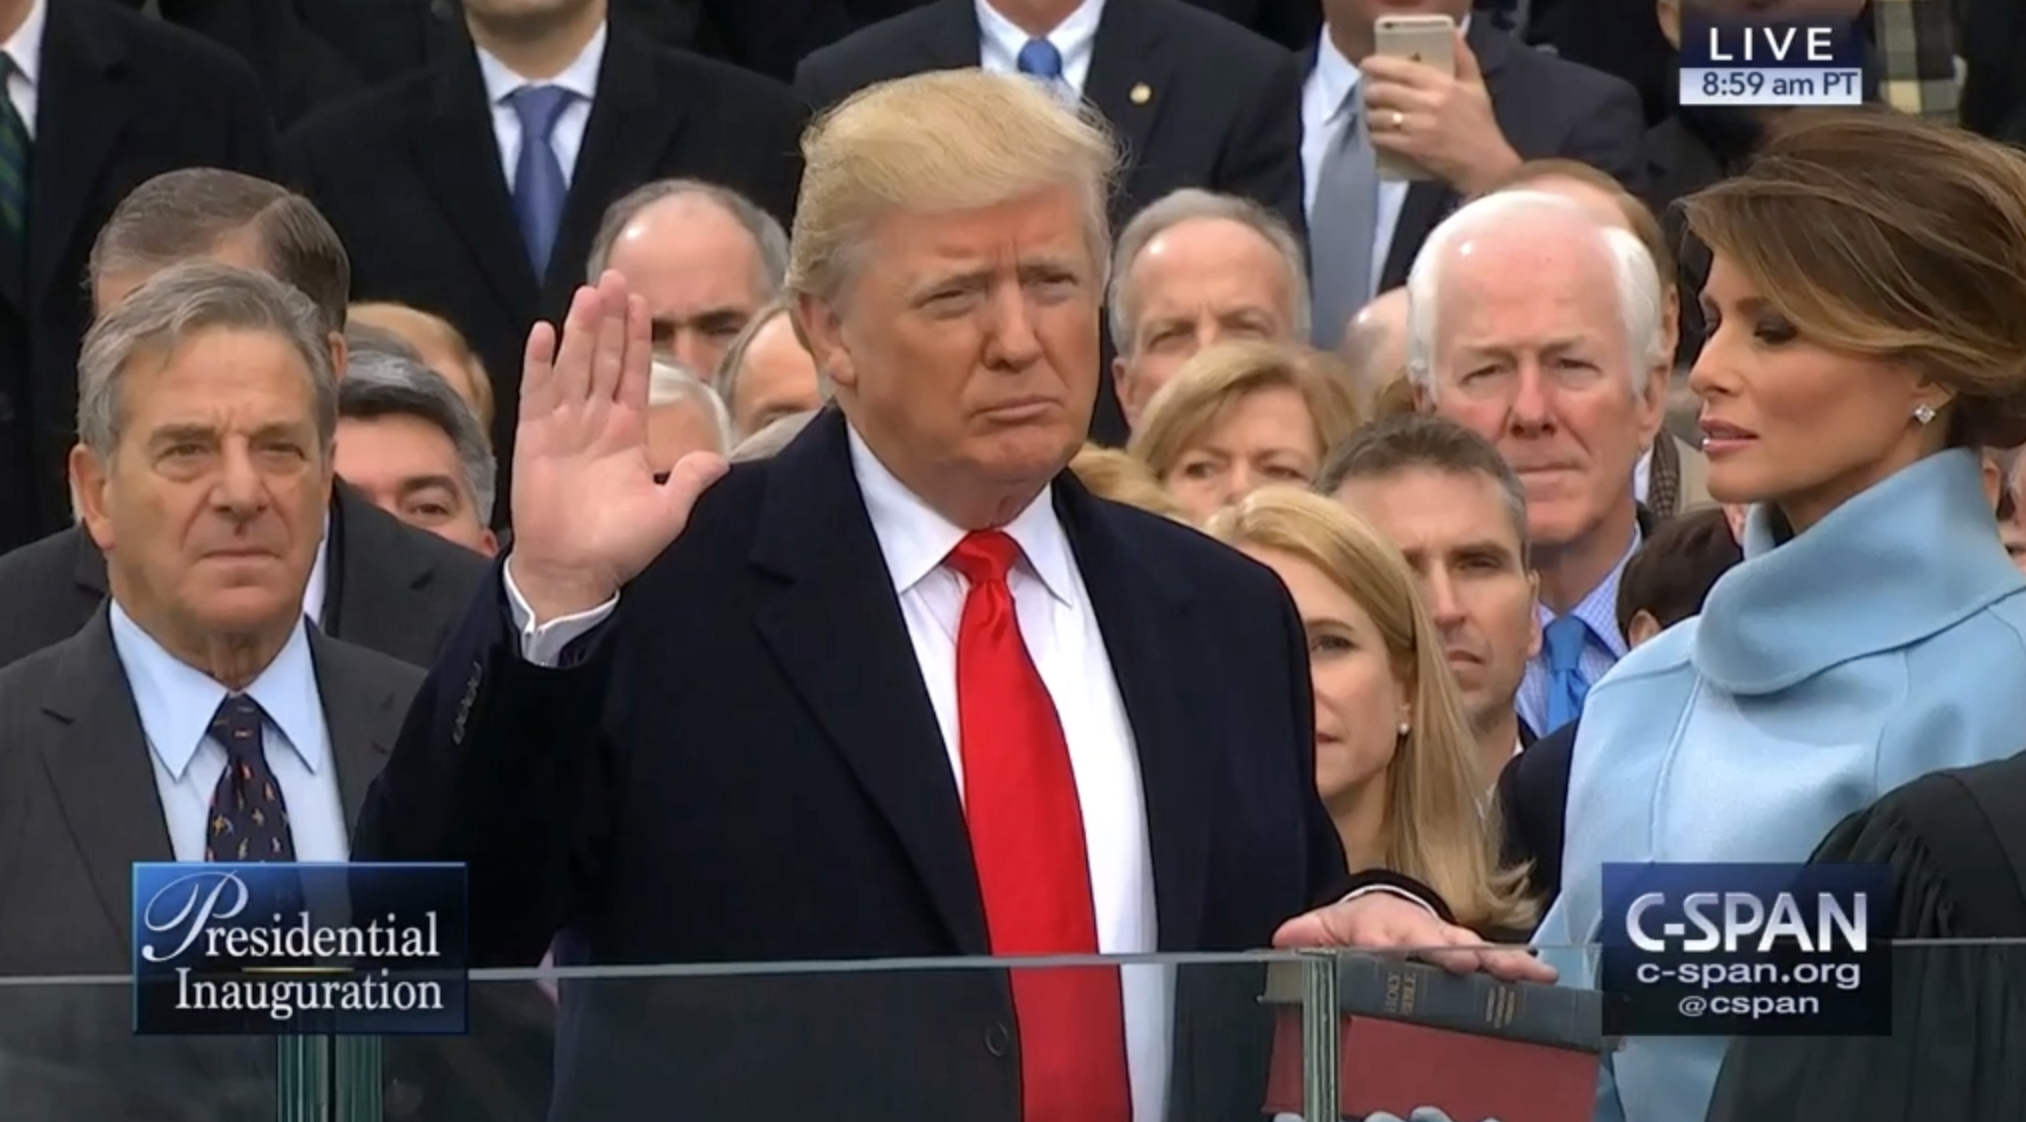 Donald Trump sworn in as U.S. president - Chicago Tribune